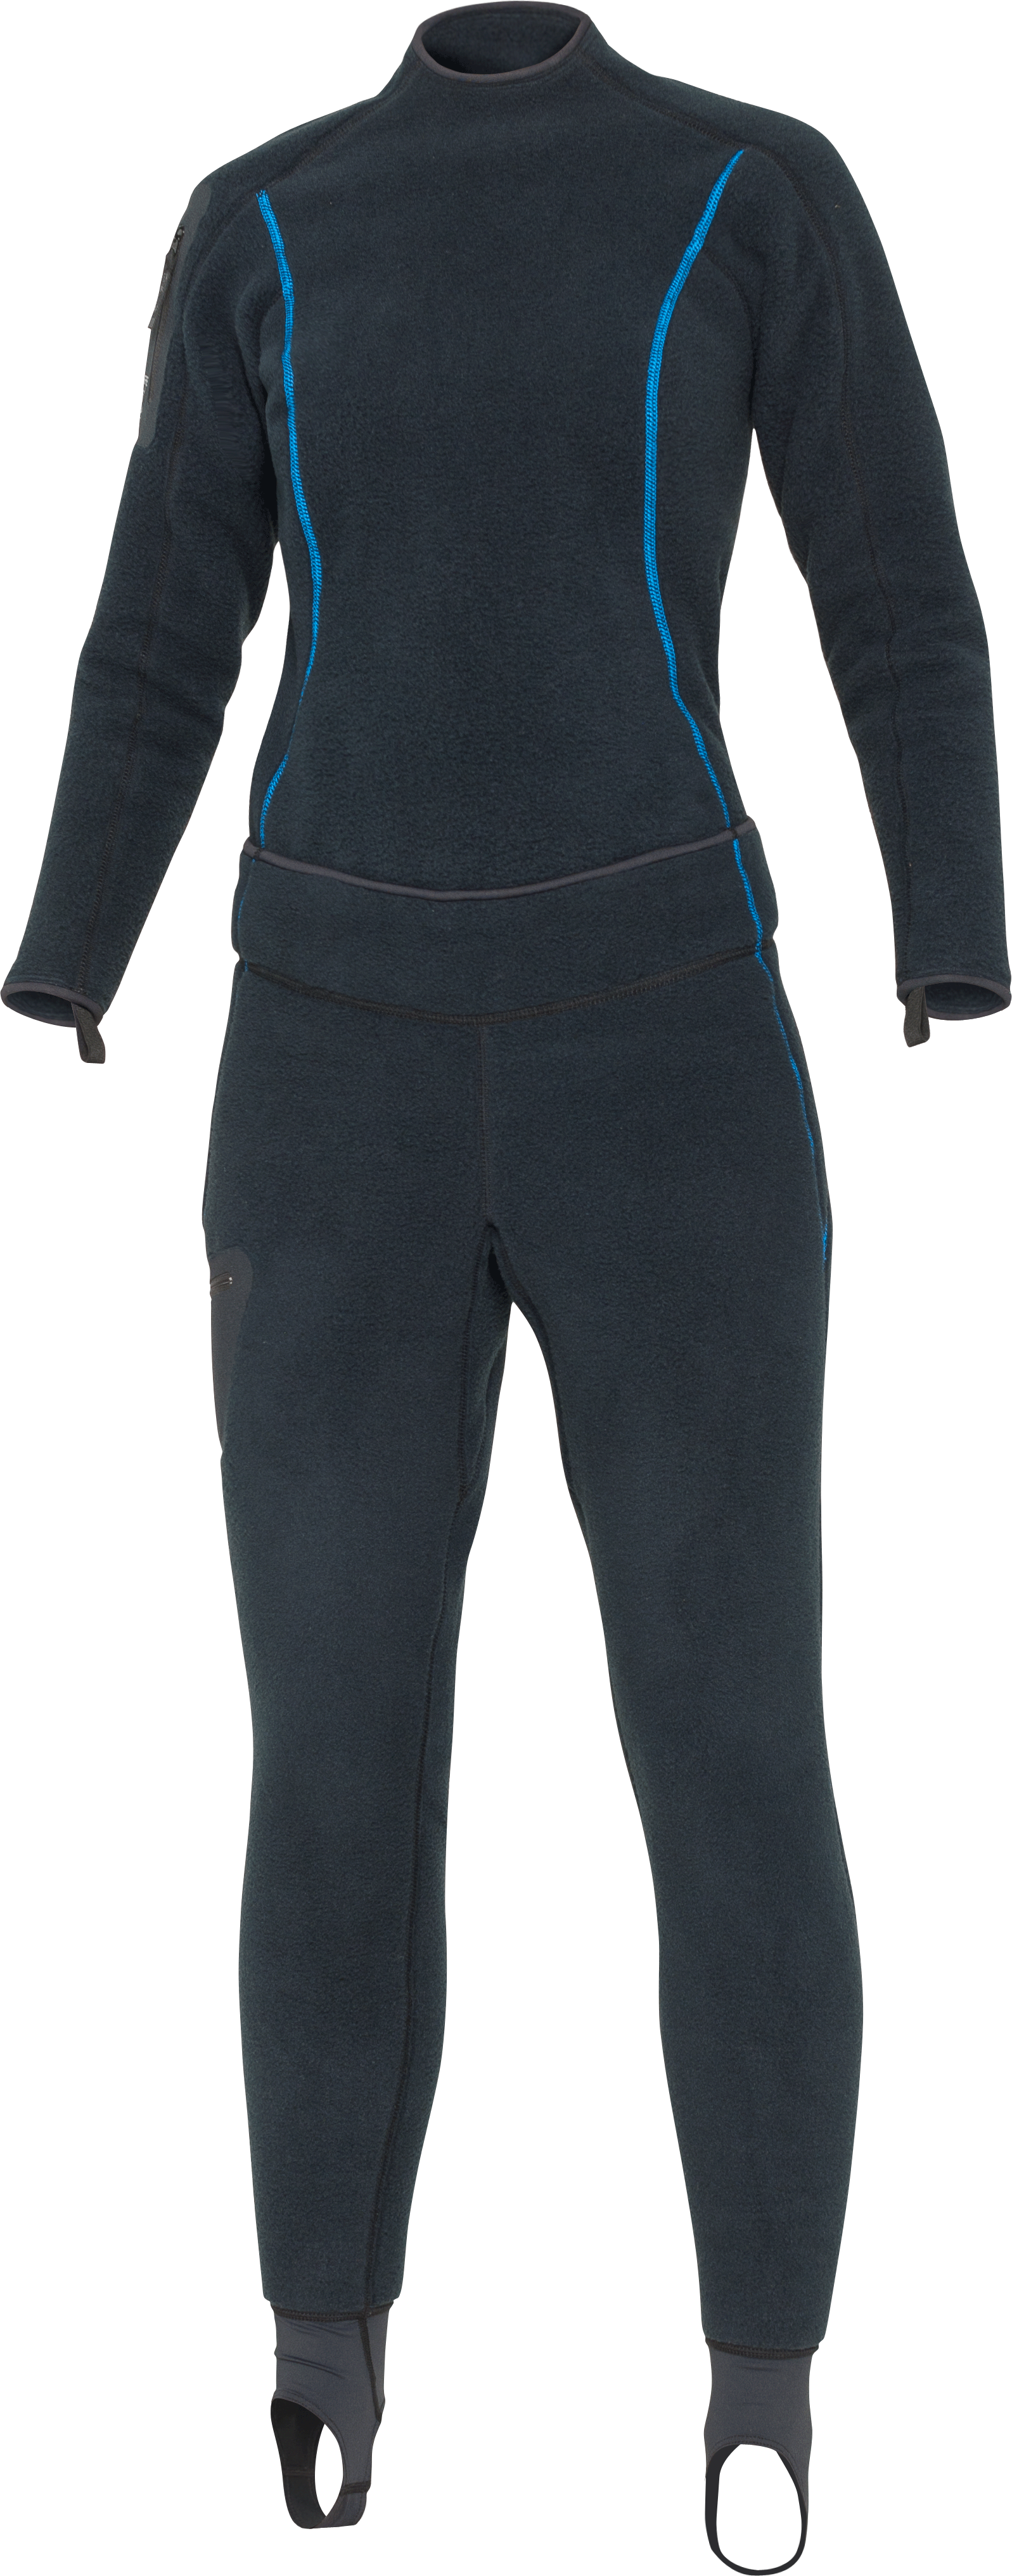 SB SYSTEM MID LAYER PANT AND TOP